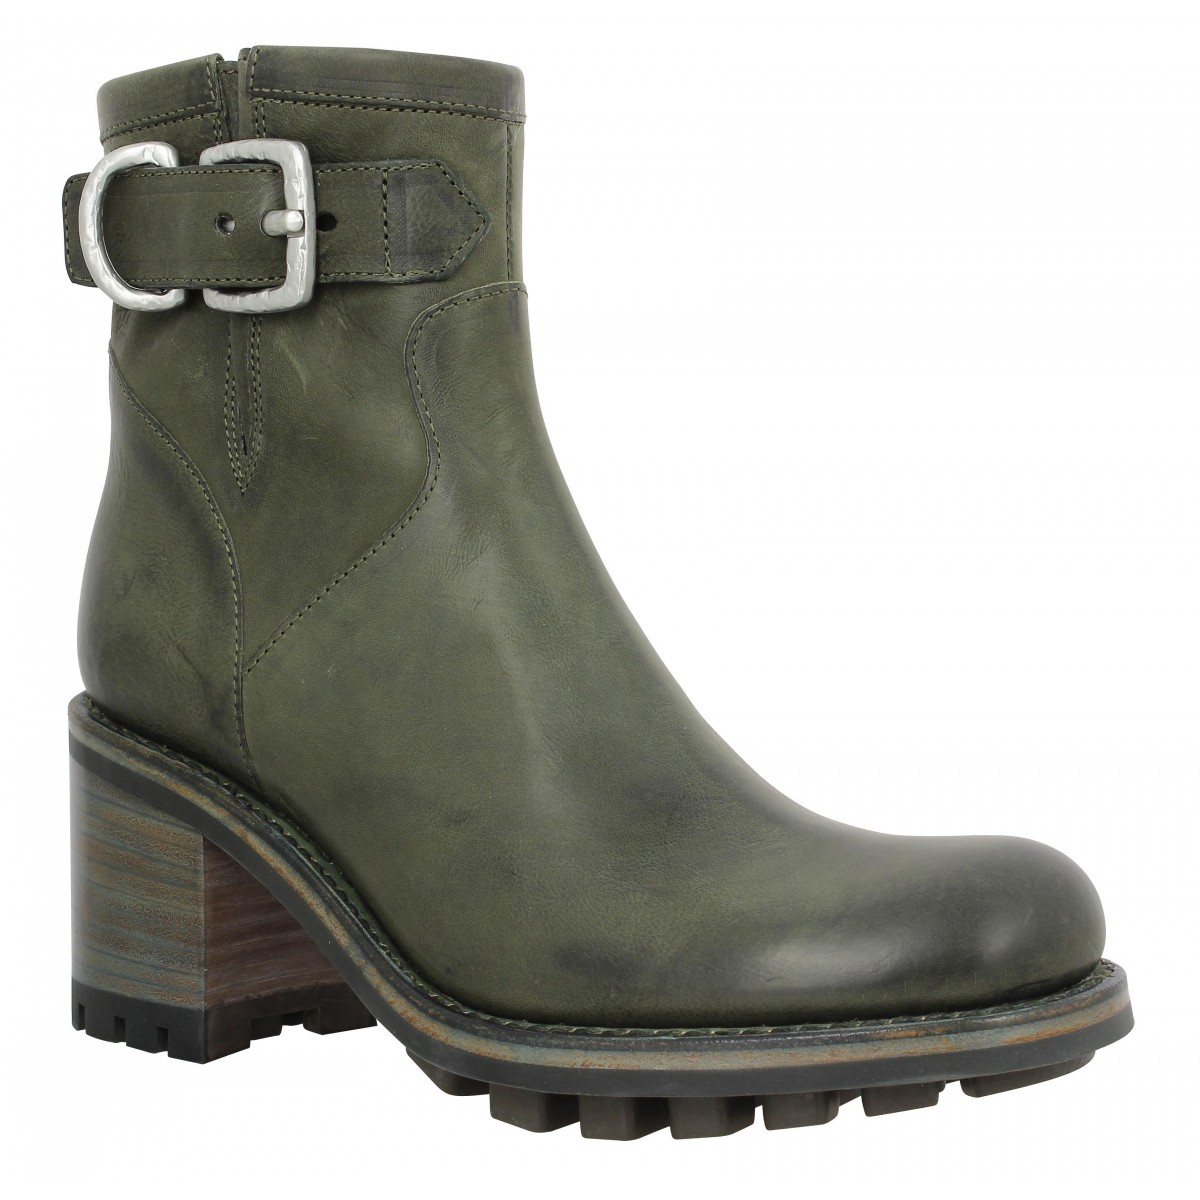 Bottes FREE LANCE Justy 7 Small Gero Buckle cuir Femme Militaire